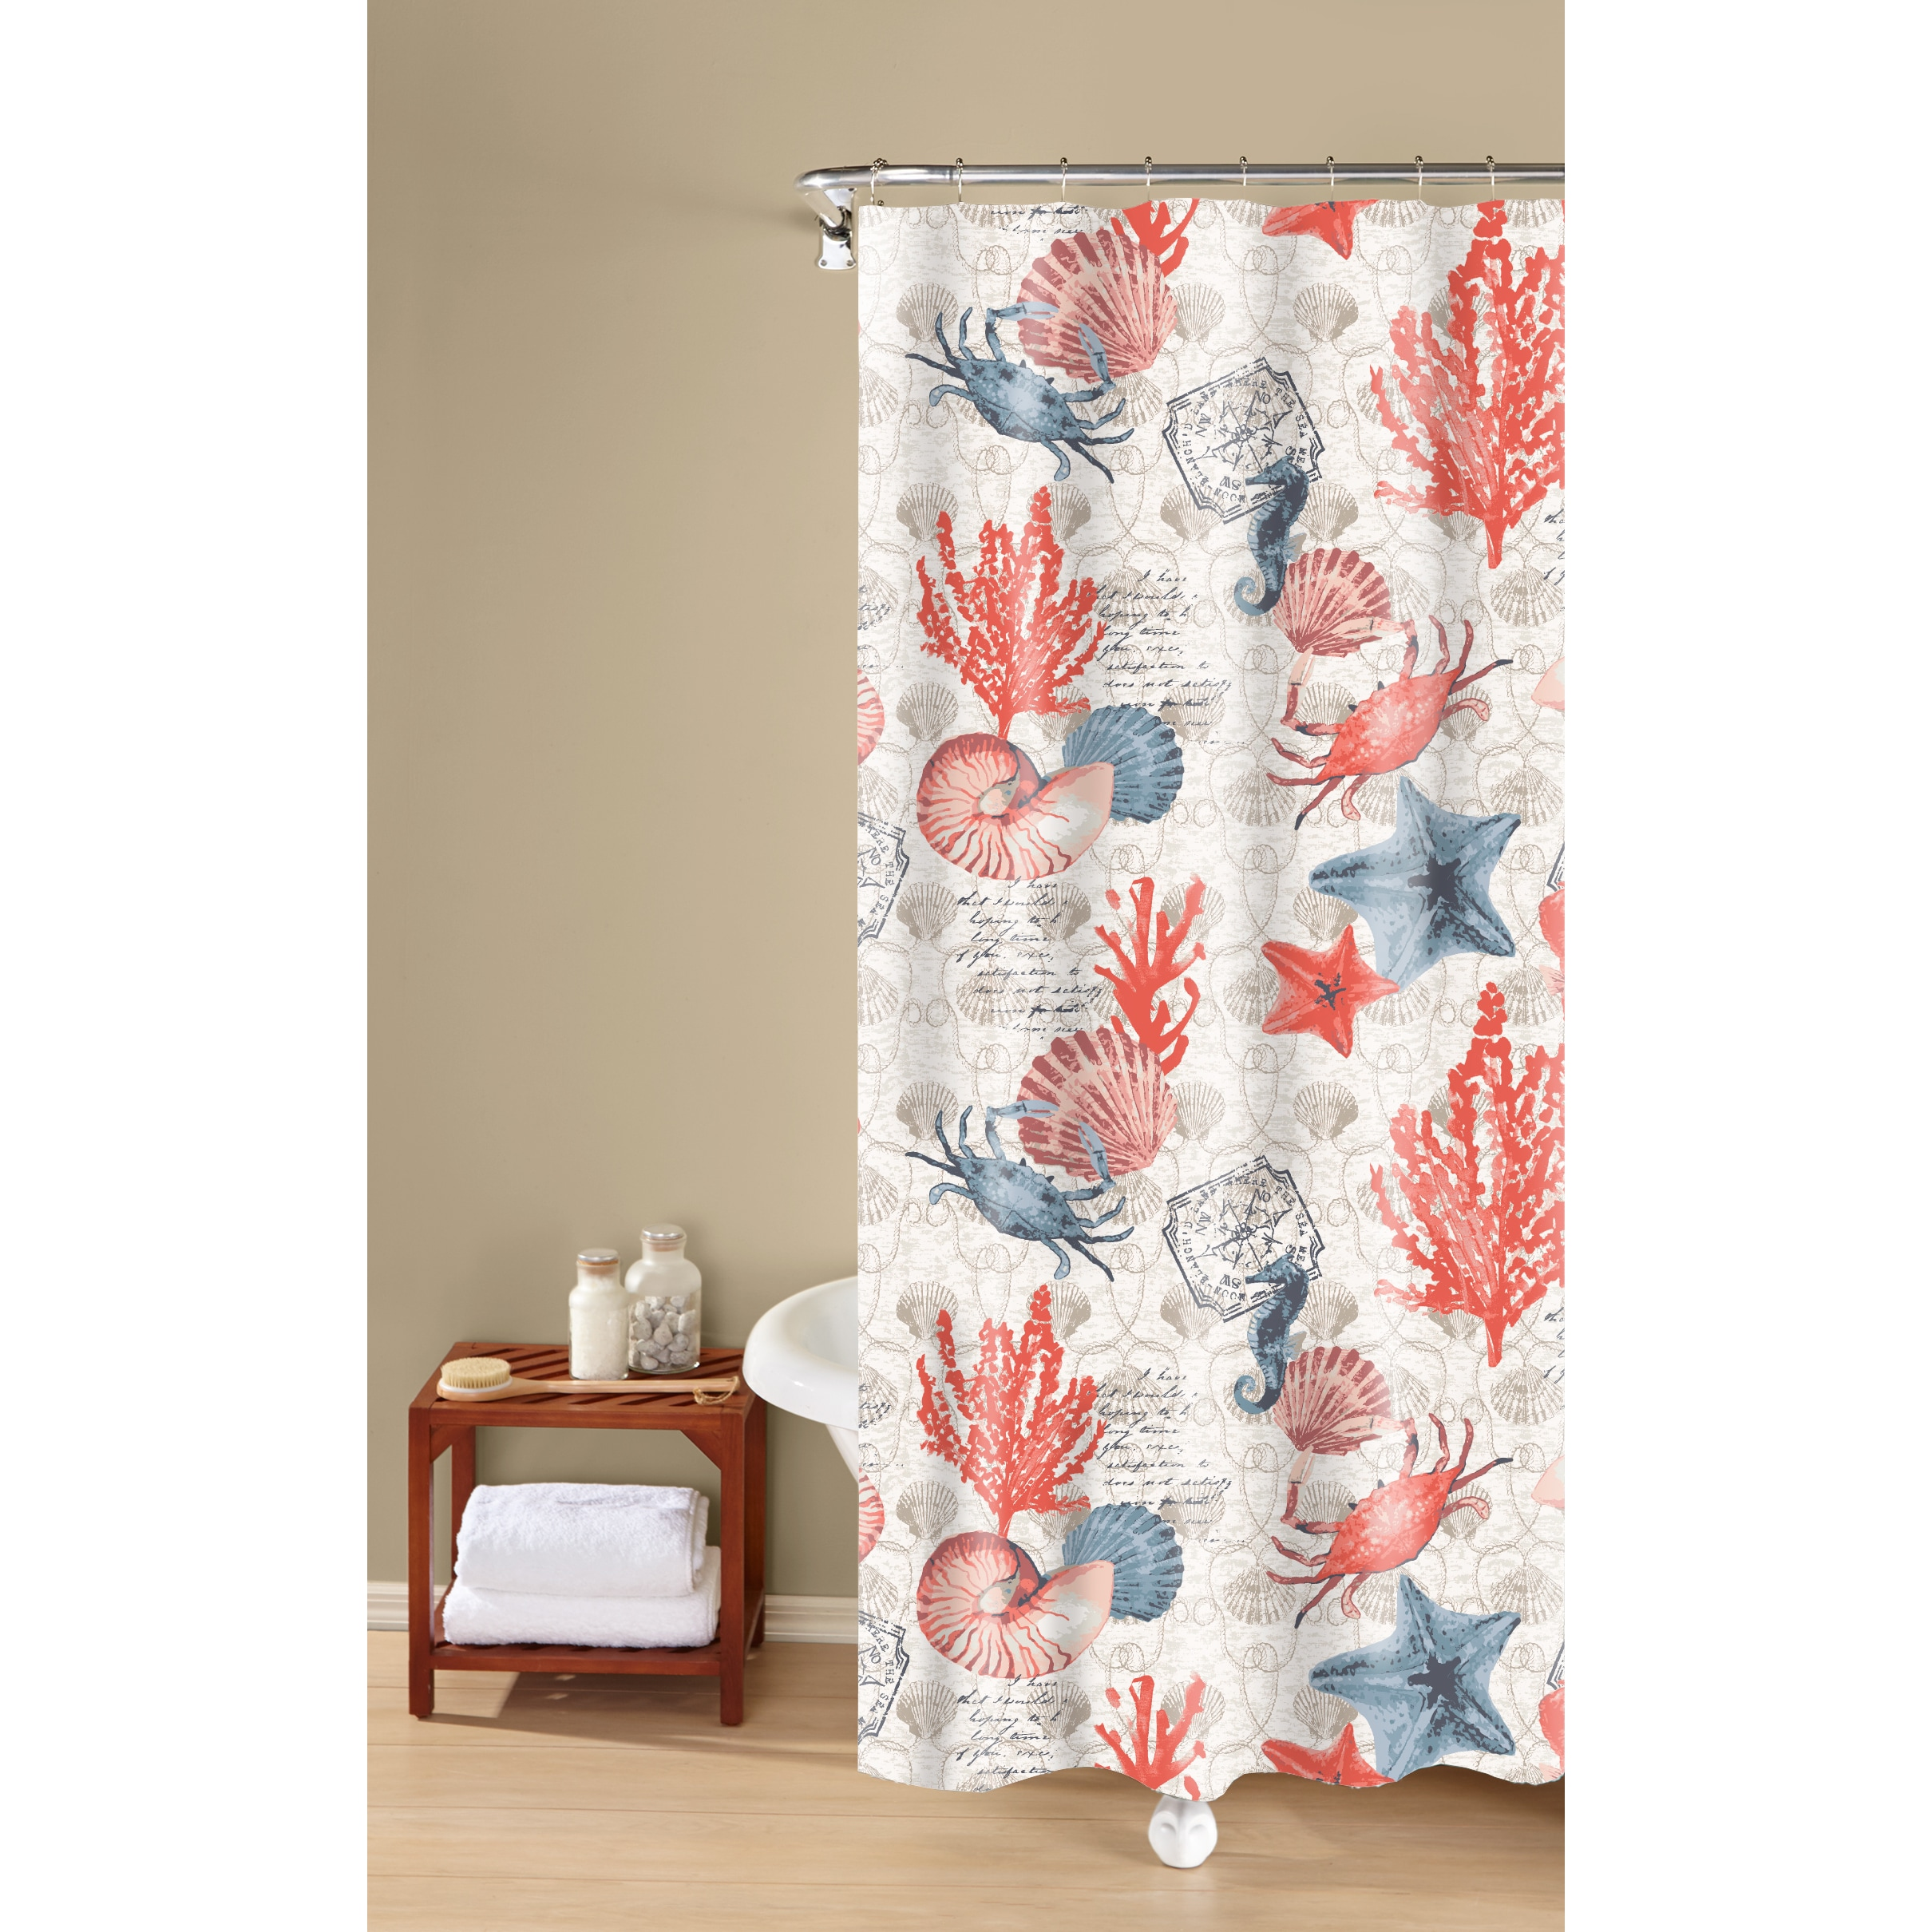 Coastal Dreams Textured Fabric Print Orange 100 Percent Cotton Shower Curtain Inspired Surroundings By 1888 Mills